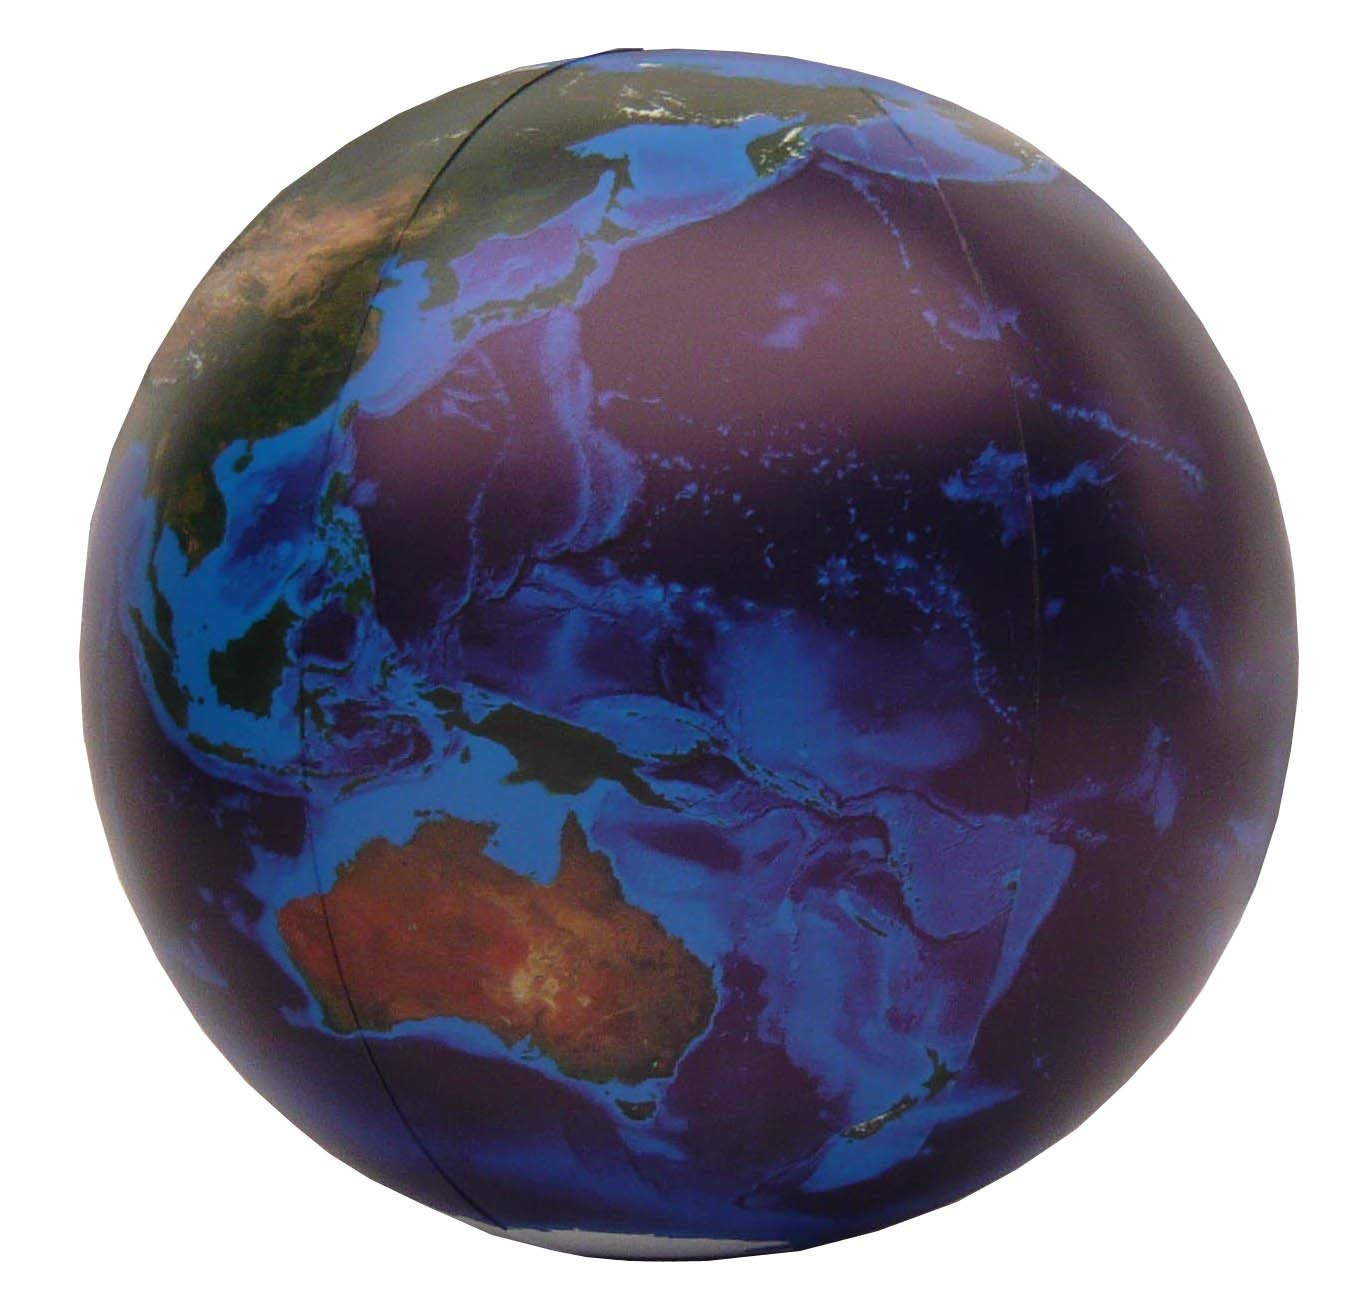 """Jet Creations GTO-36TBM Blue Marble Earth Globe 36 inch- Best for Home, School, Party, Pool, Summer Camp, for Kids and Adults, Multi, 36"""""""